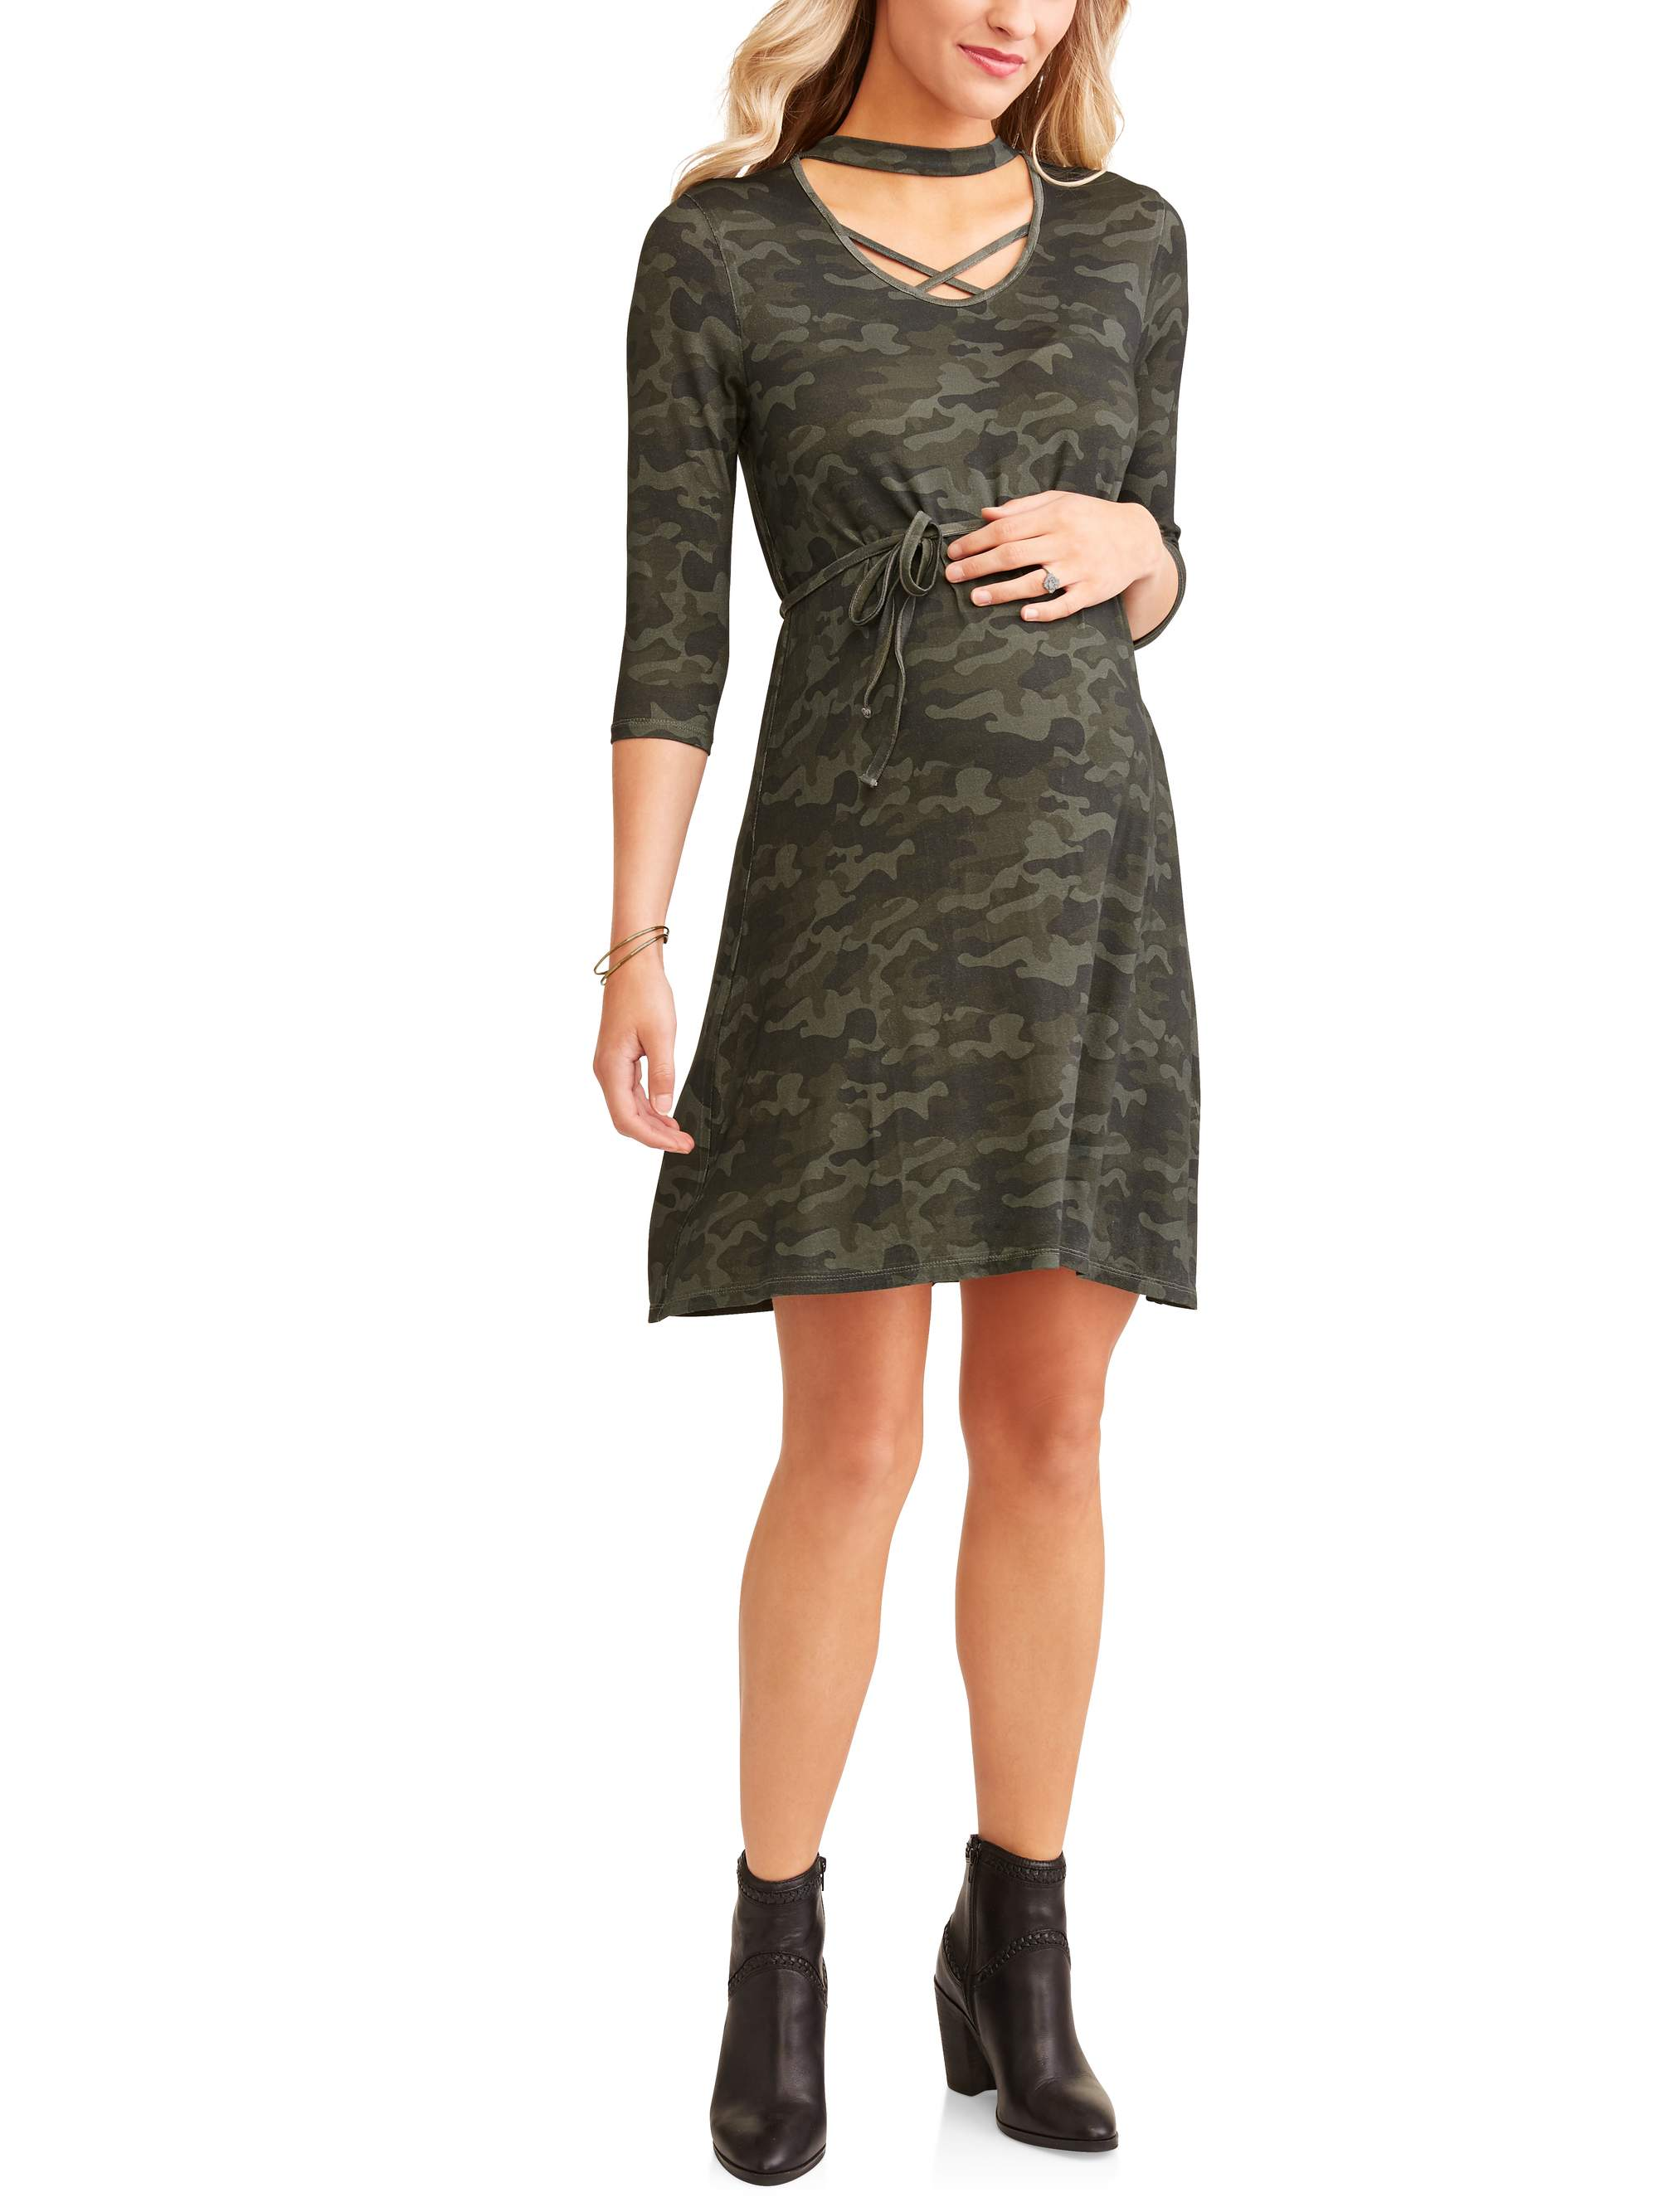 Maternity Short Sleeve Knit Dress With Strap Details by ES Sutton